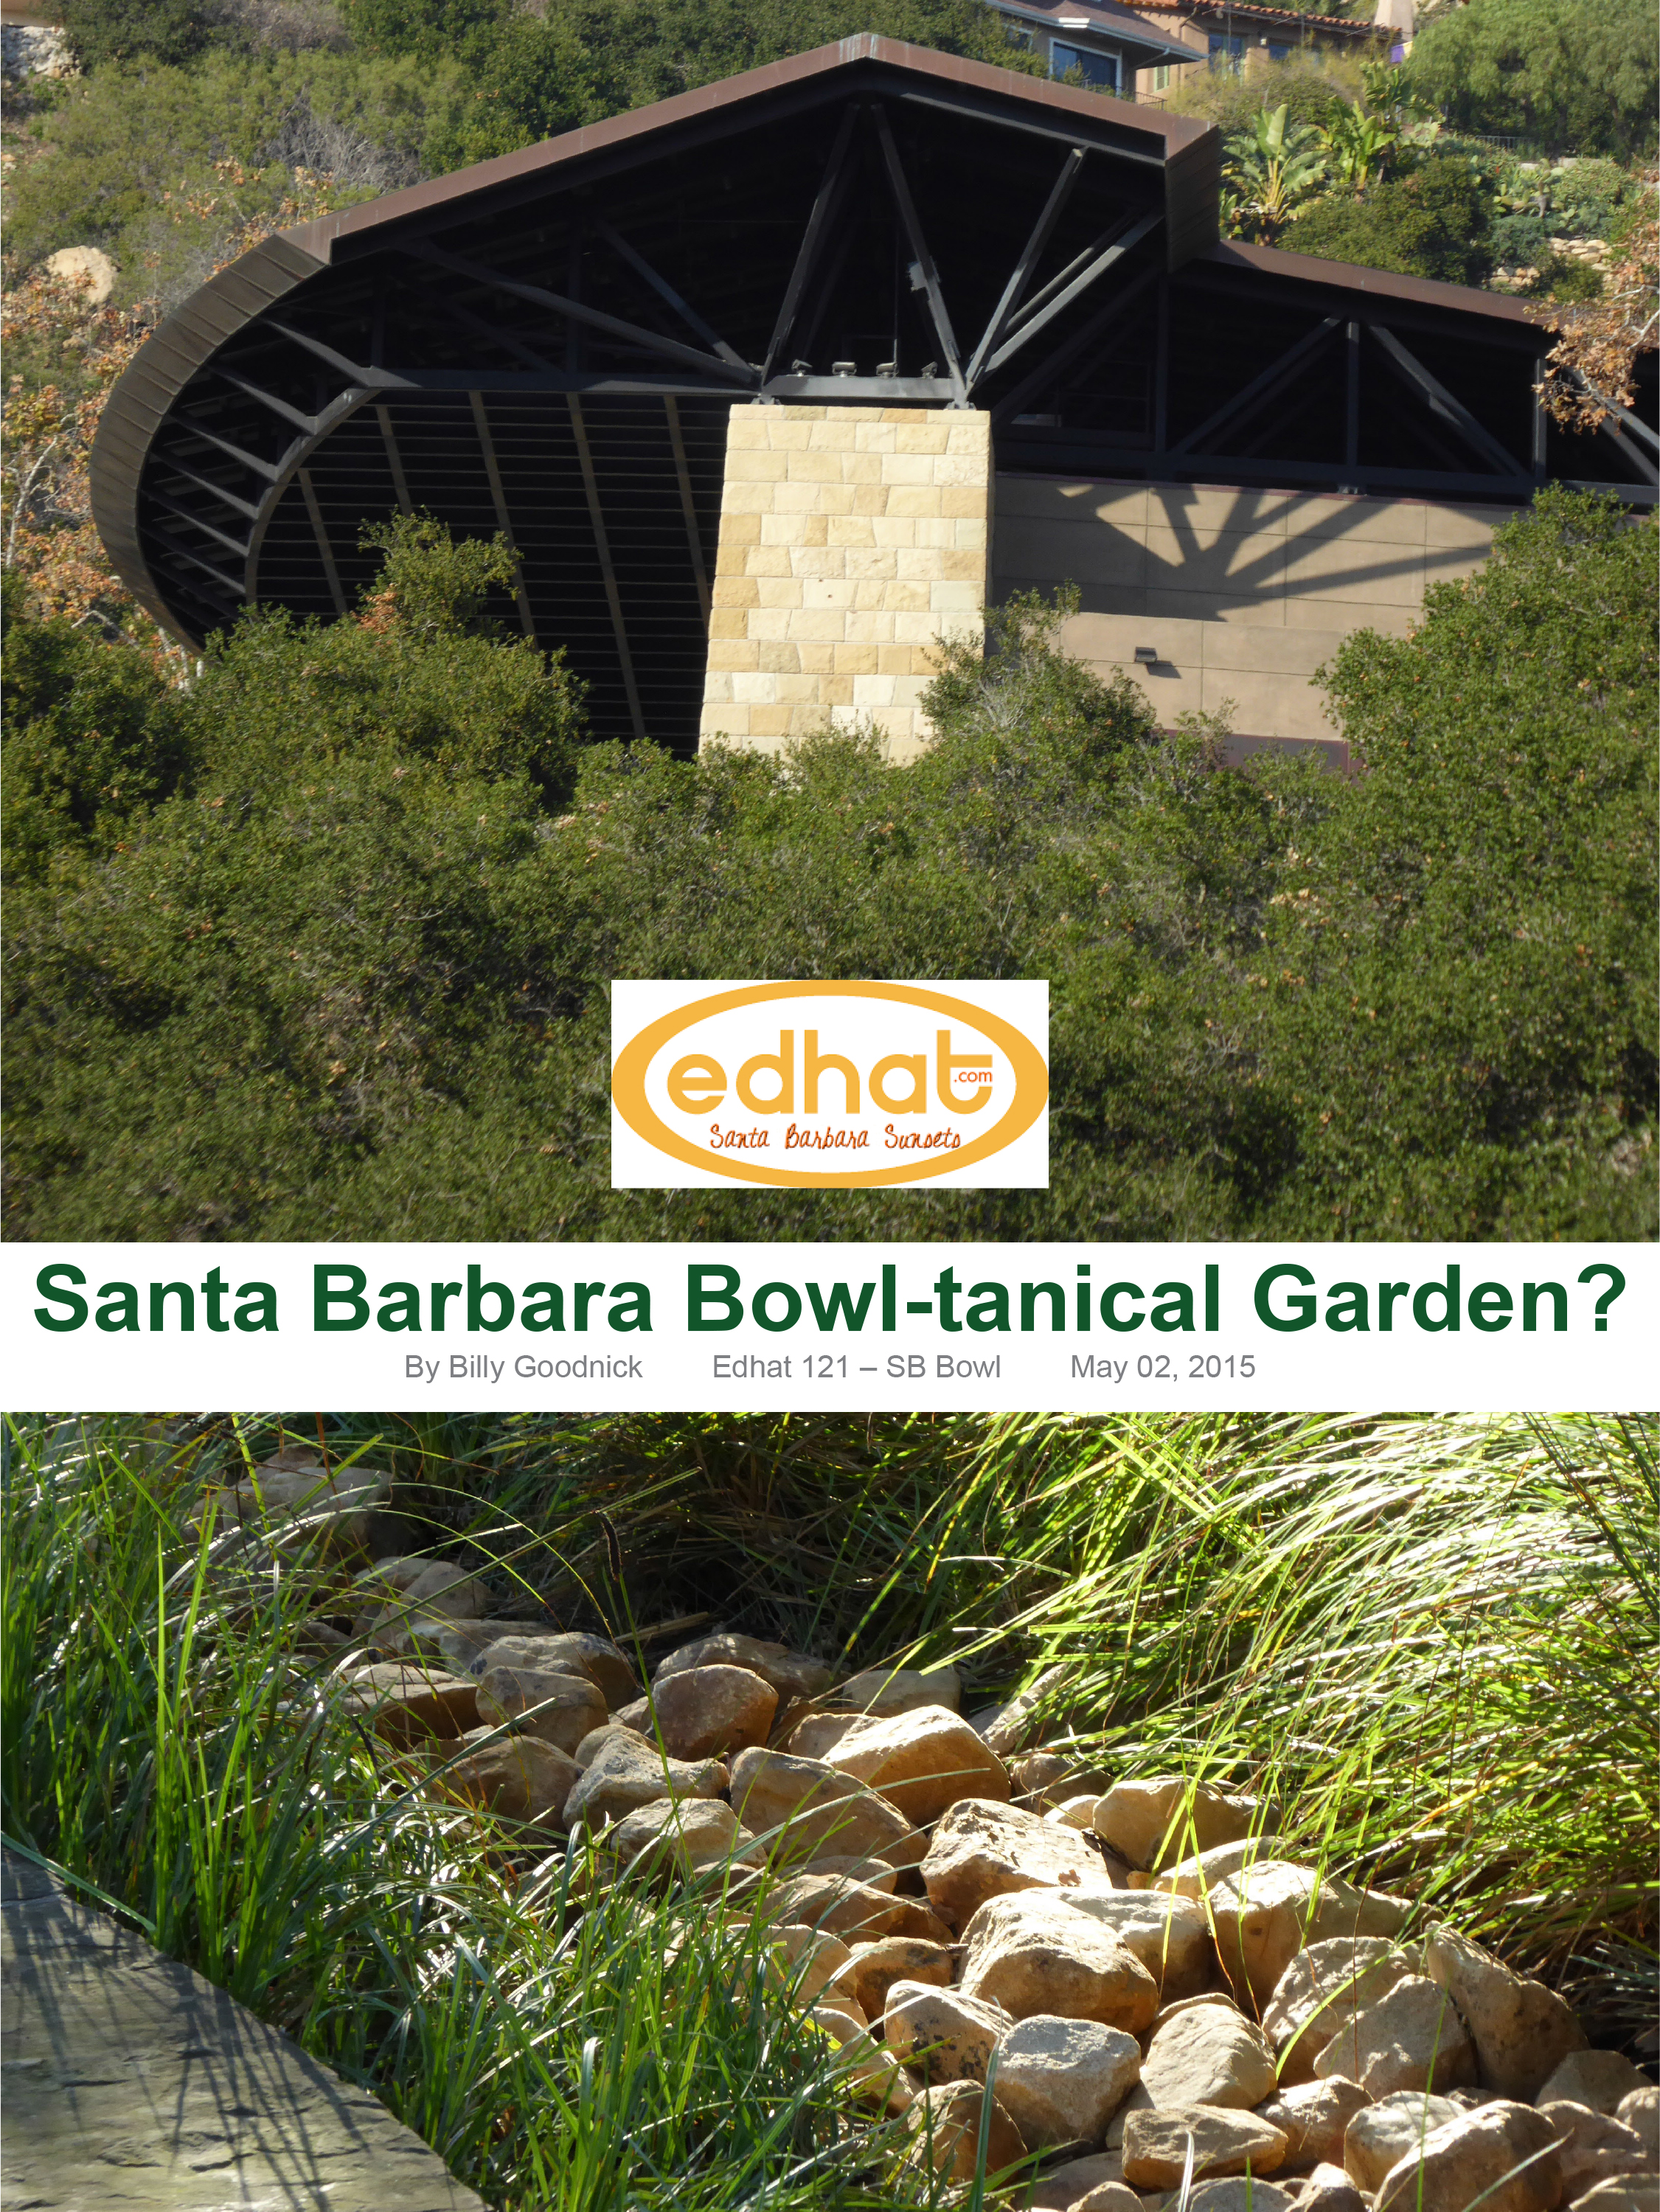 Santa Barbara Bowl-tanical Garden 2015